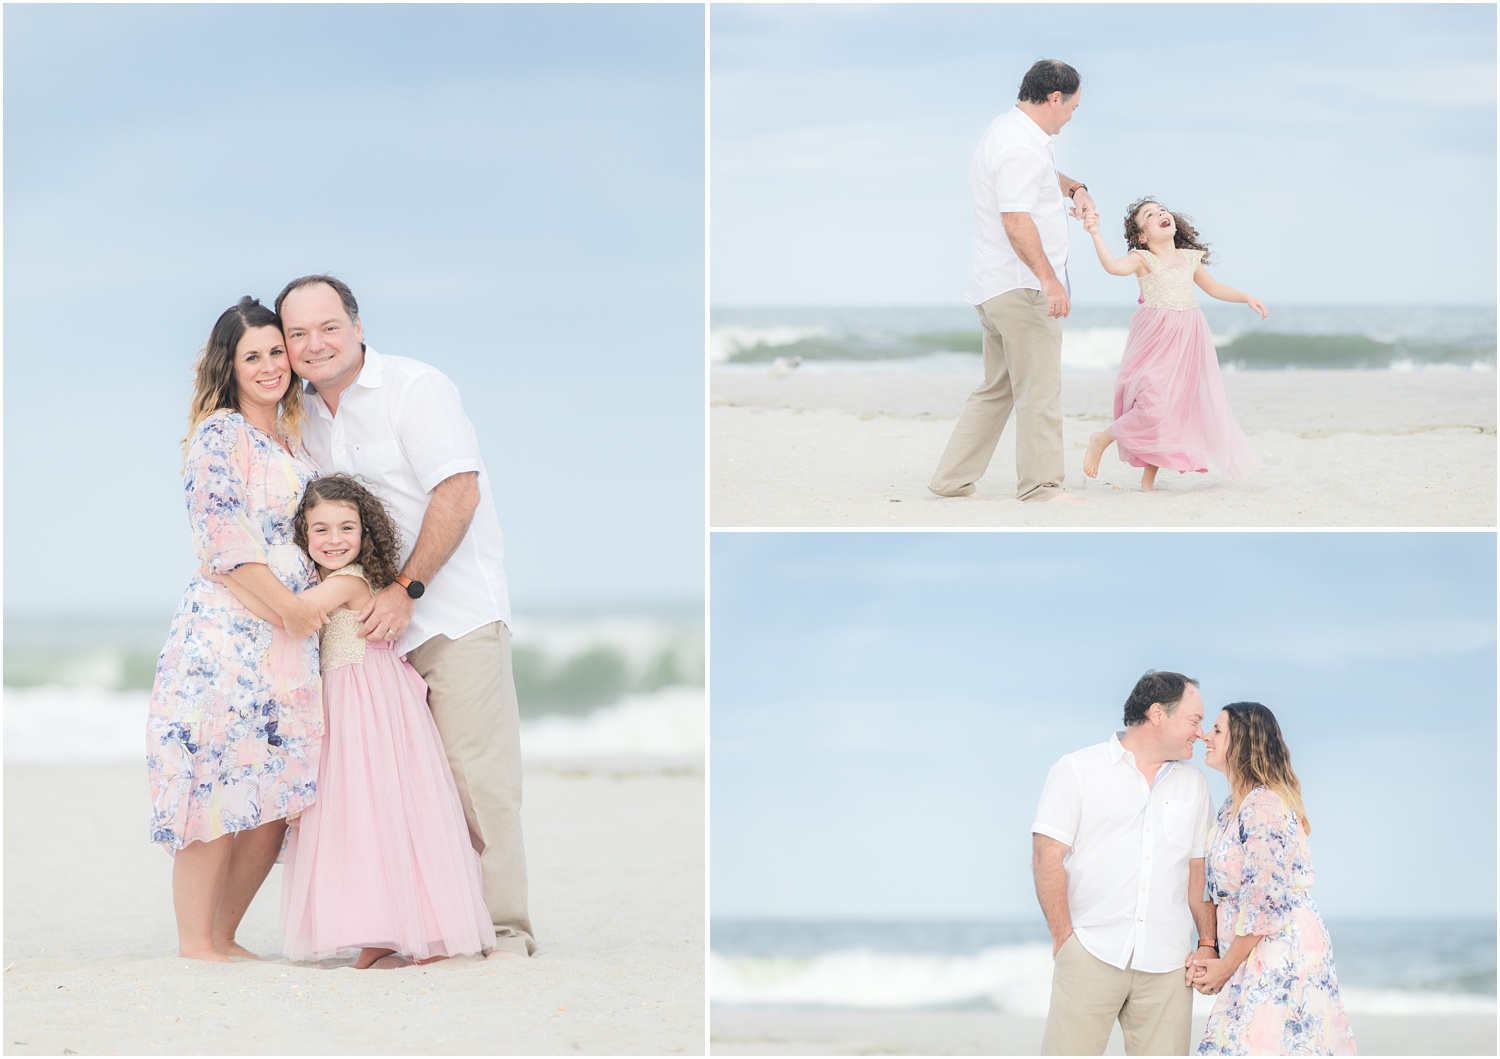 family photos on the beach in Lavallette, NJ.